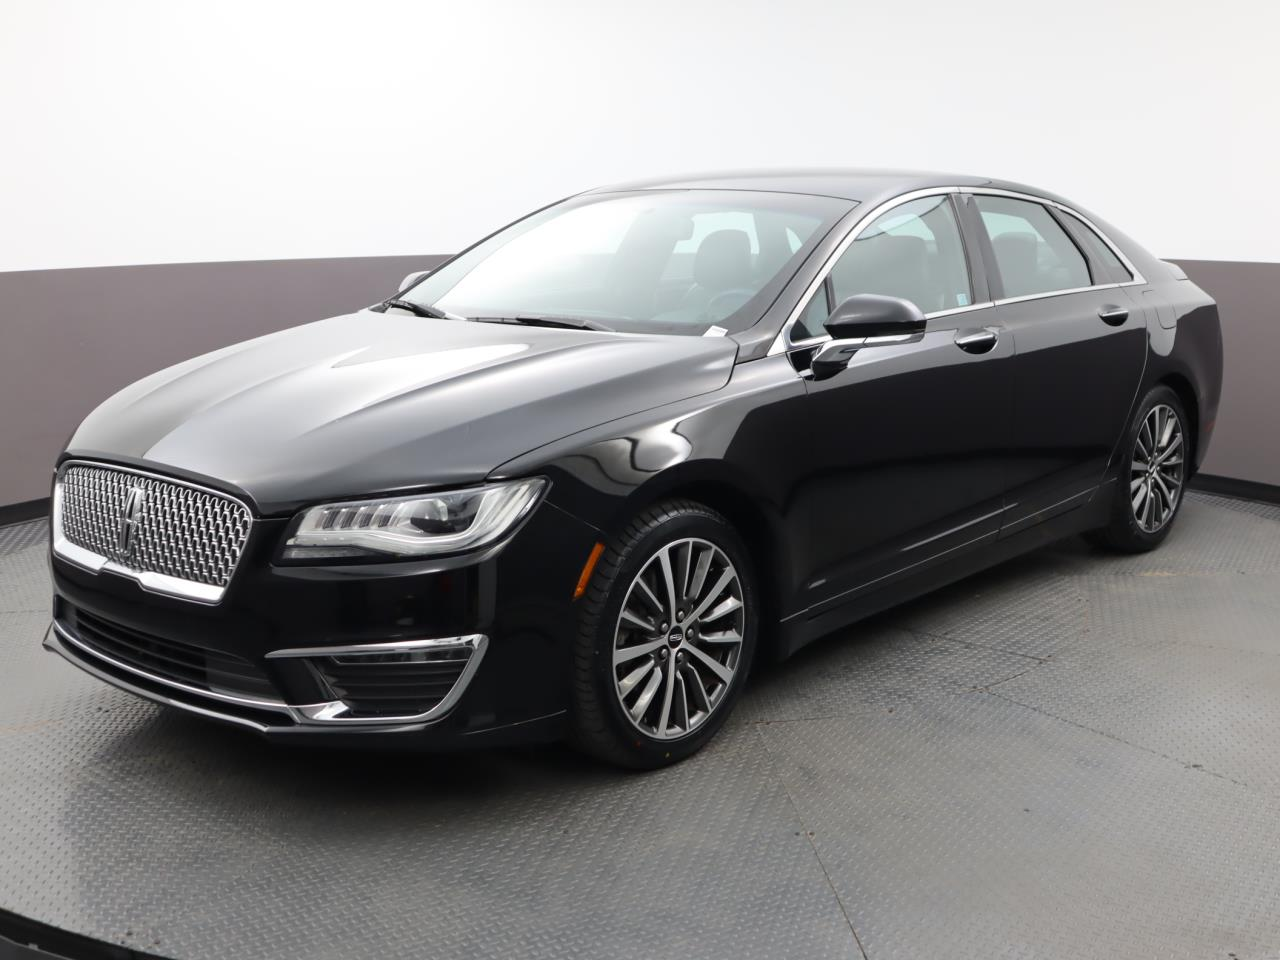 Used LINCOLN MKZ 2017 MARGATE PREMIERE